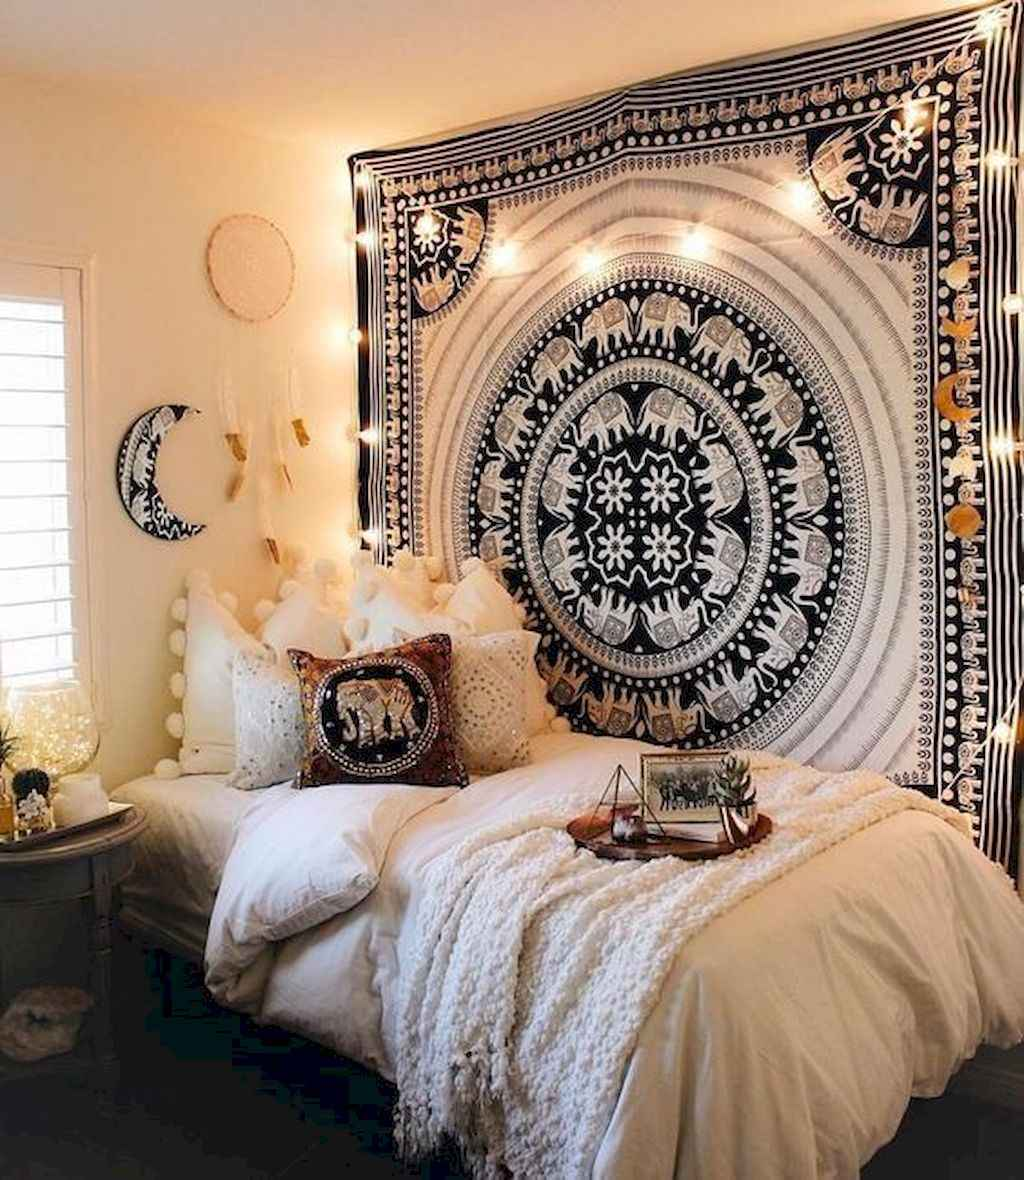 19 dorm room decorating ideas on a budget